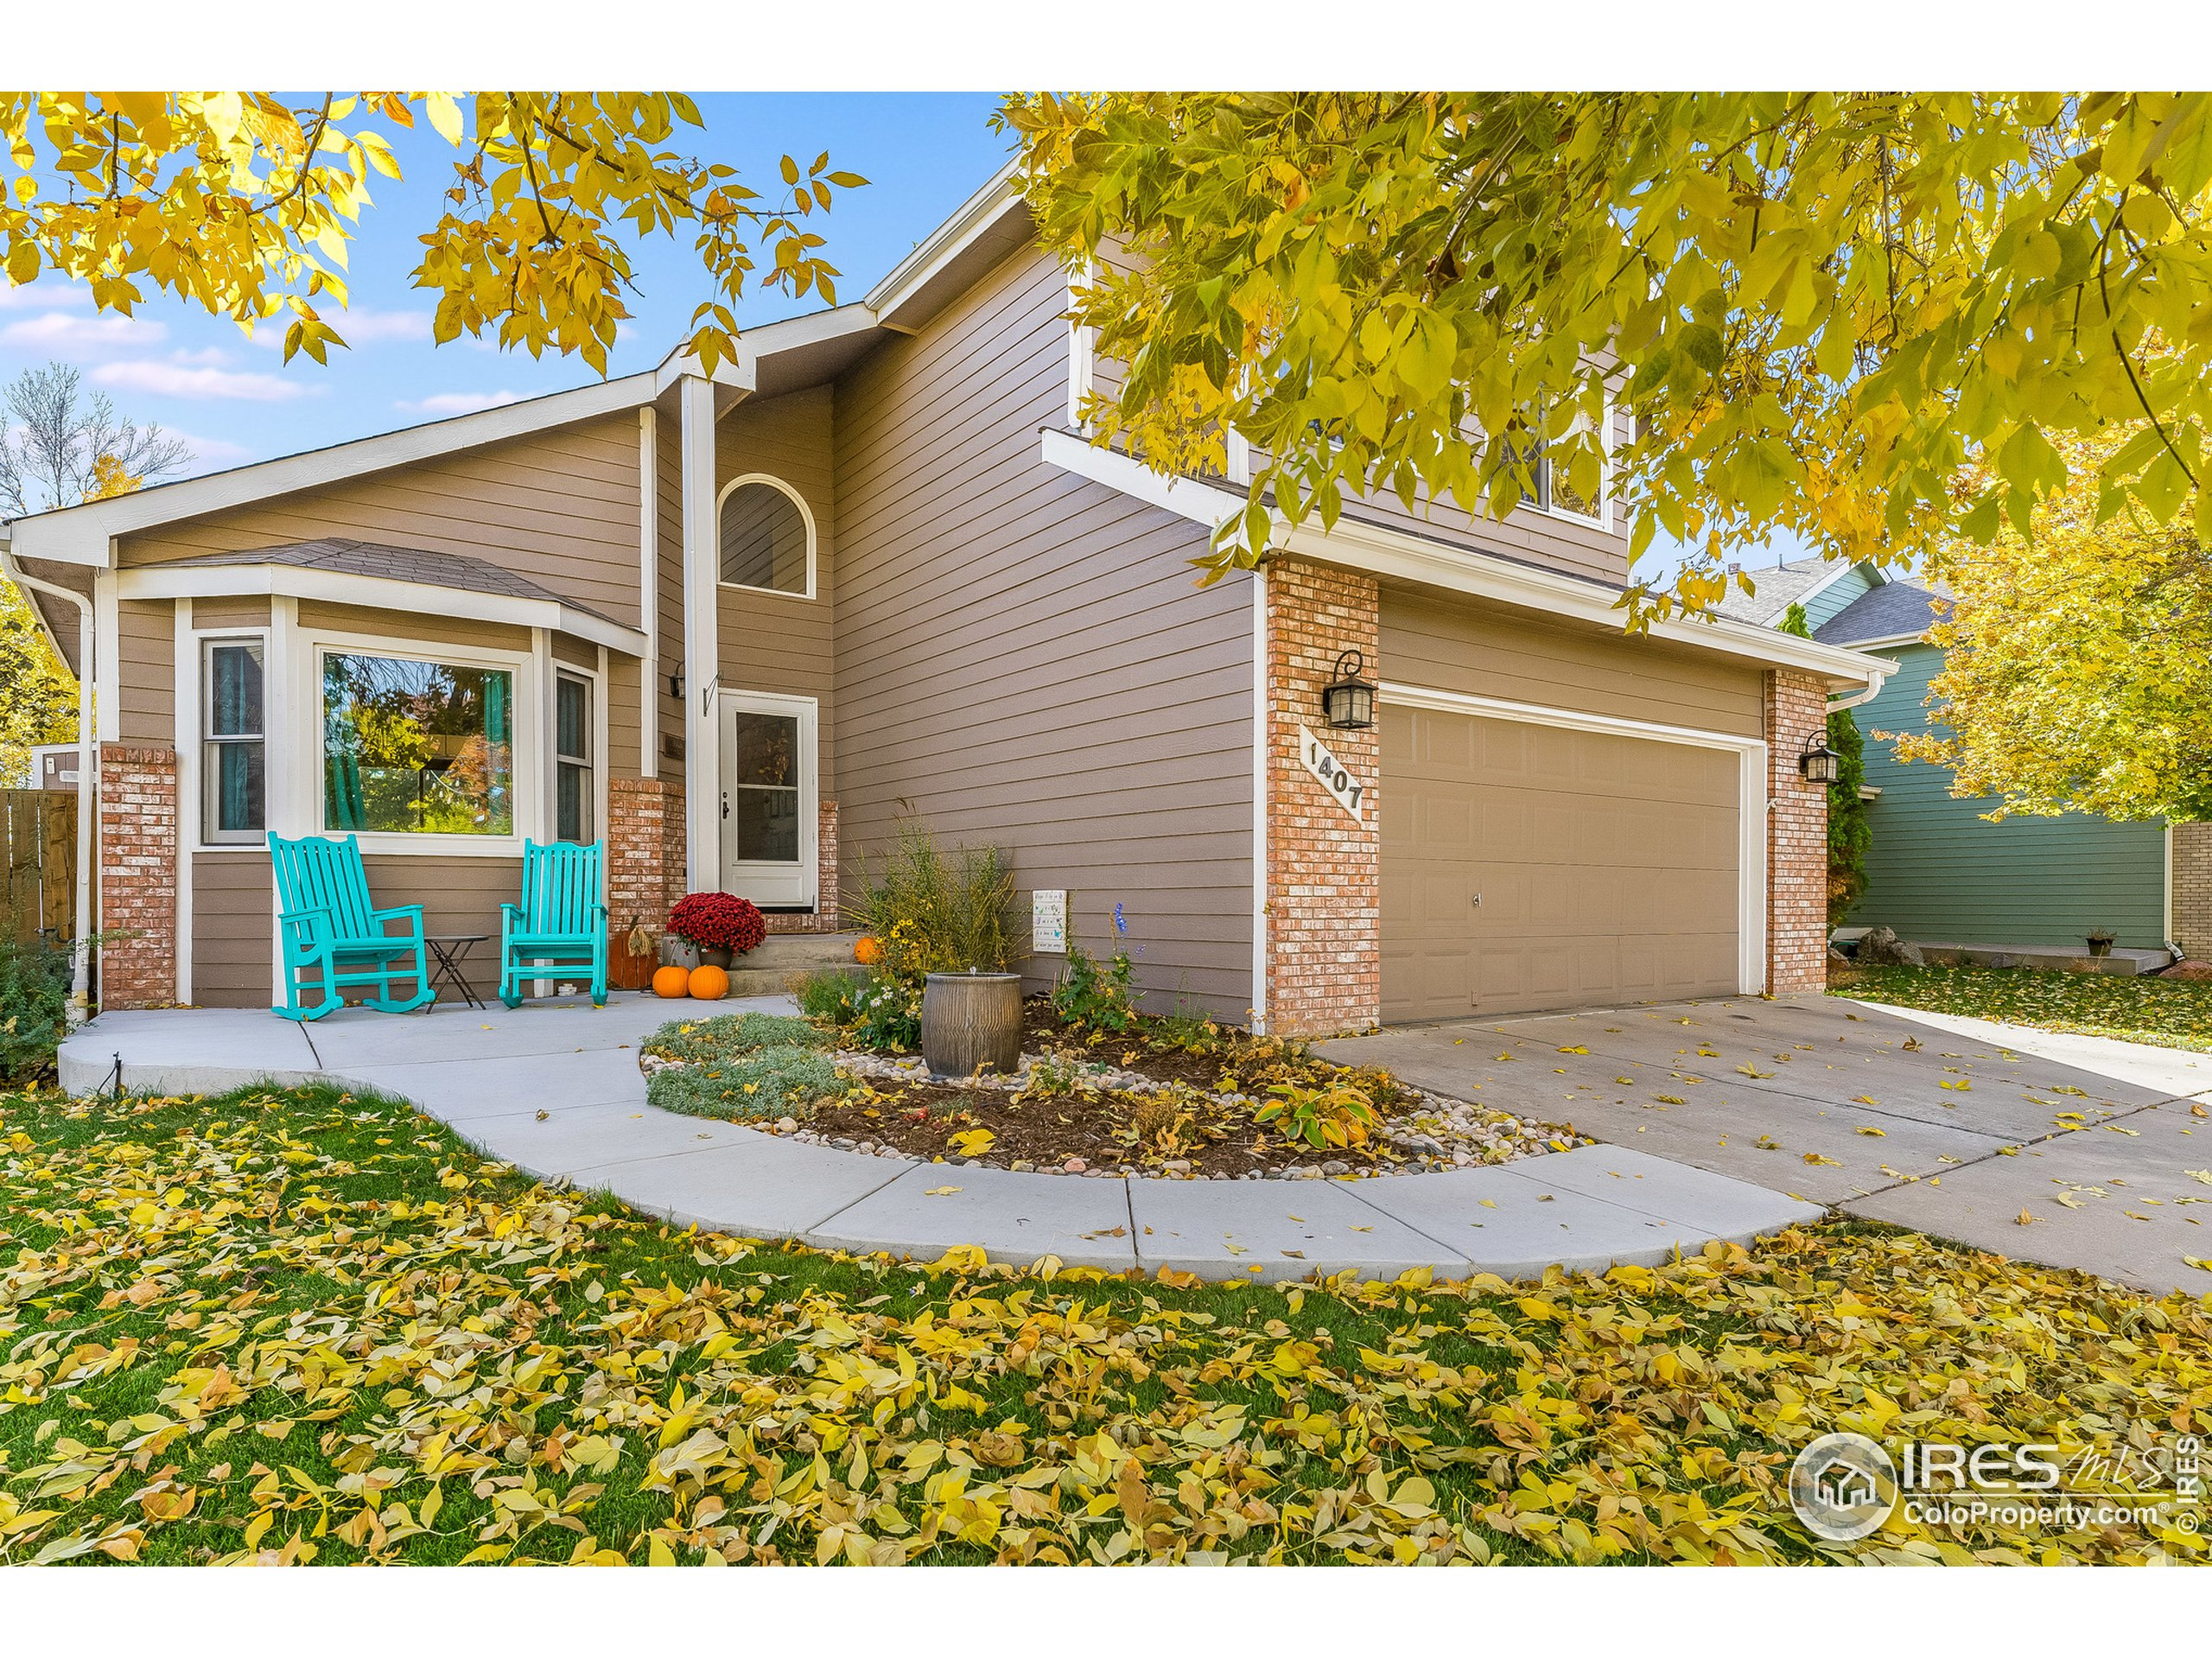 Wonderful west Ft Collins location with a very clean and well maintained home.  This house has the outdoor upgrades fit to entertain and gather, while the interior is tastefully finished and roomy. Family room, kitchen and breakfast nook have nicely finished wood floors and overall great main floor space. Granite counters in kitchen and bath. Large primary bedroom with updated bathroom as well as upgraded second bath on upper level. New front walk/patio as well as back concrete. Newer attached shed, back deck and mature landscaping. Fully finished basement with bar allows for gathering and games. Close to PSD neighborhood schools. Come take a look at this beauty in desired Kingston Woods.